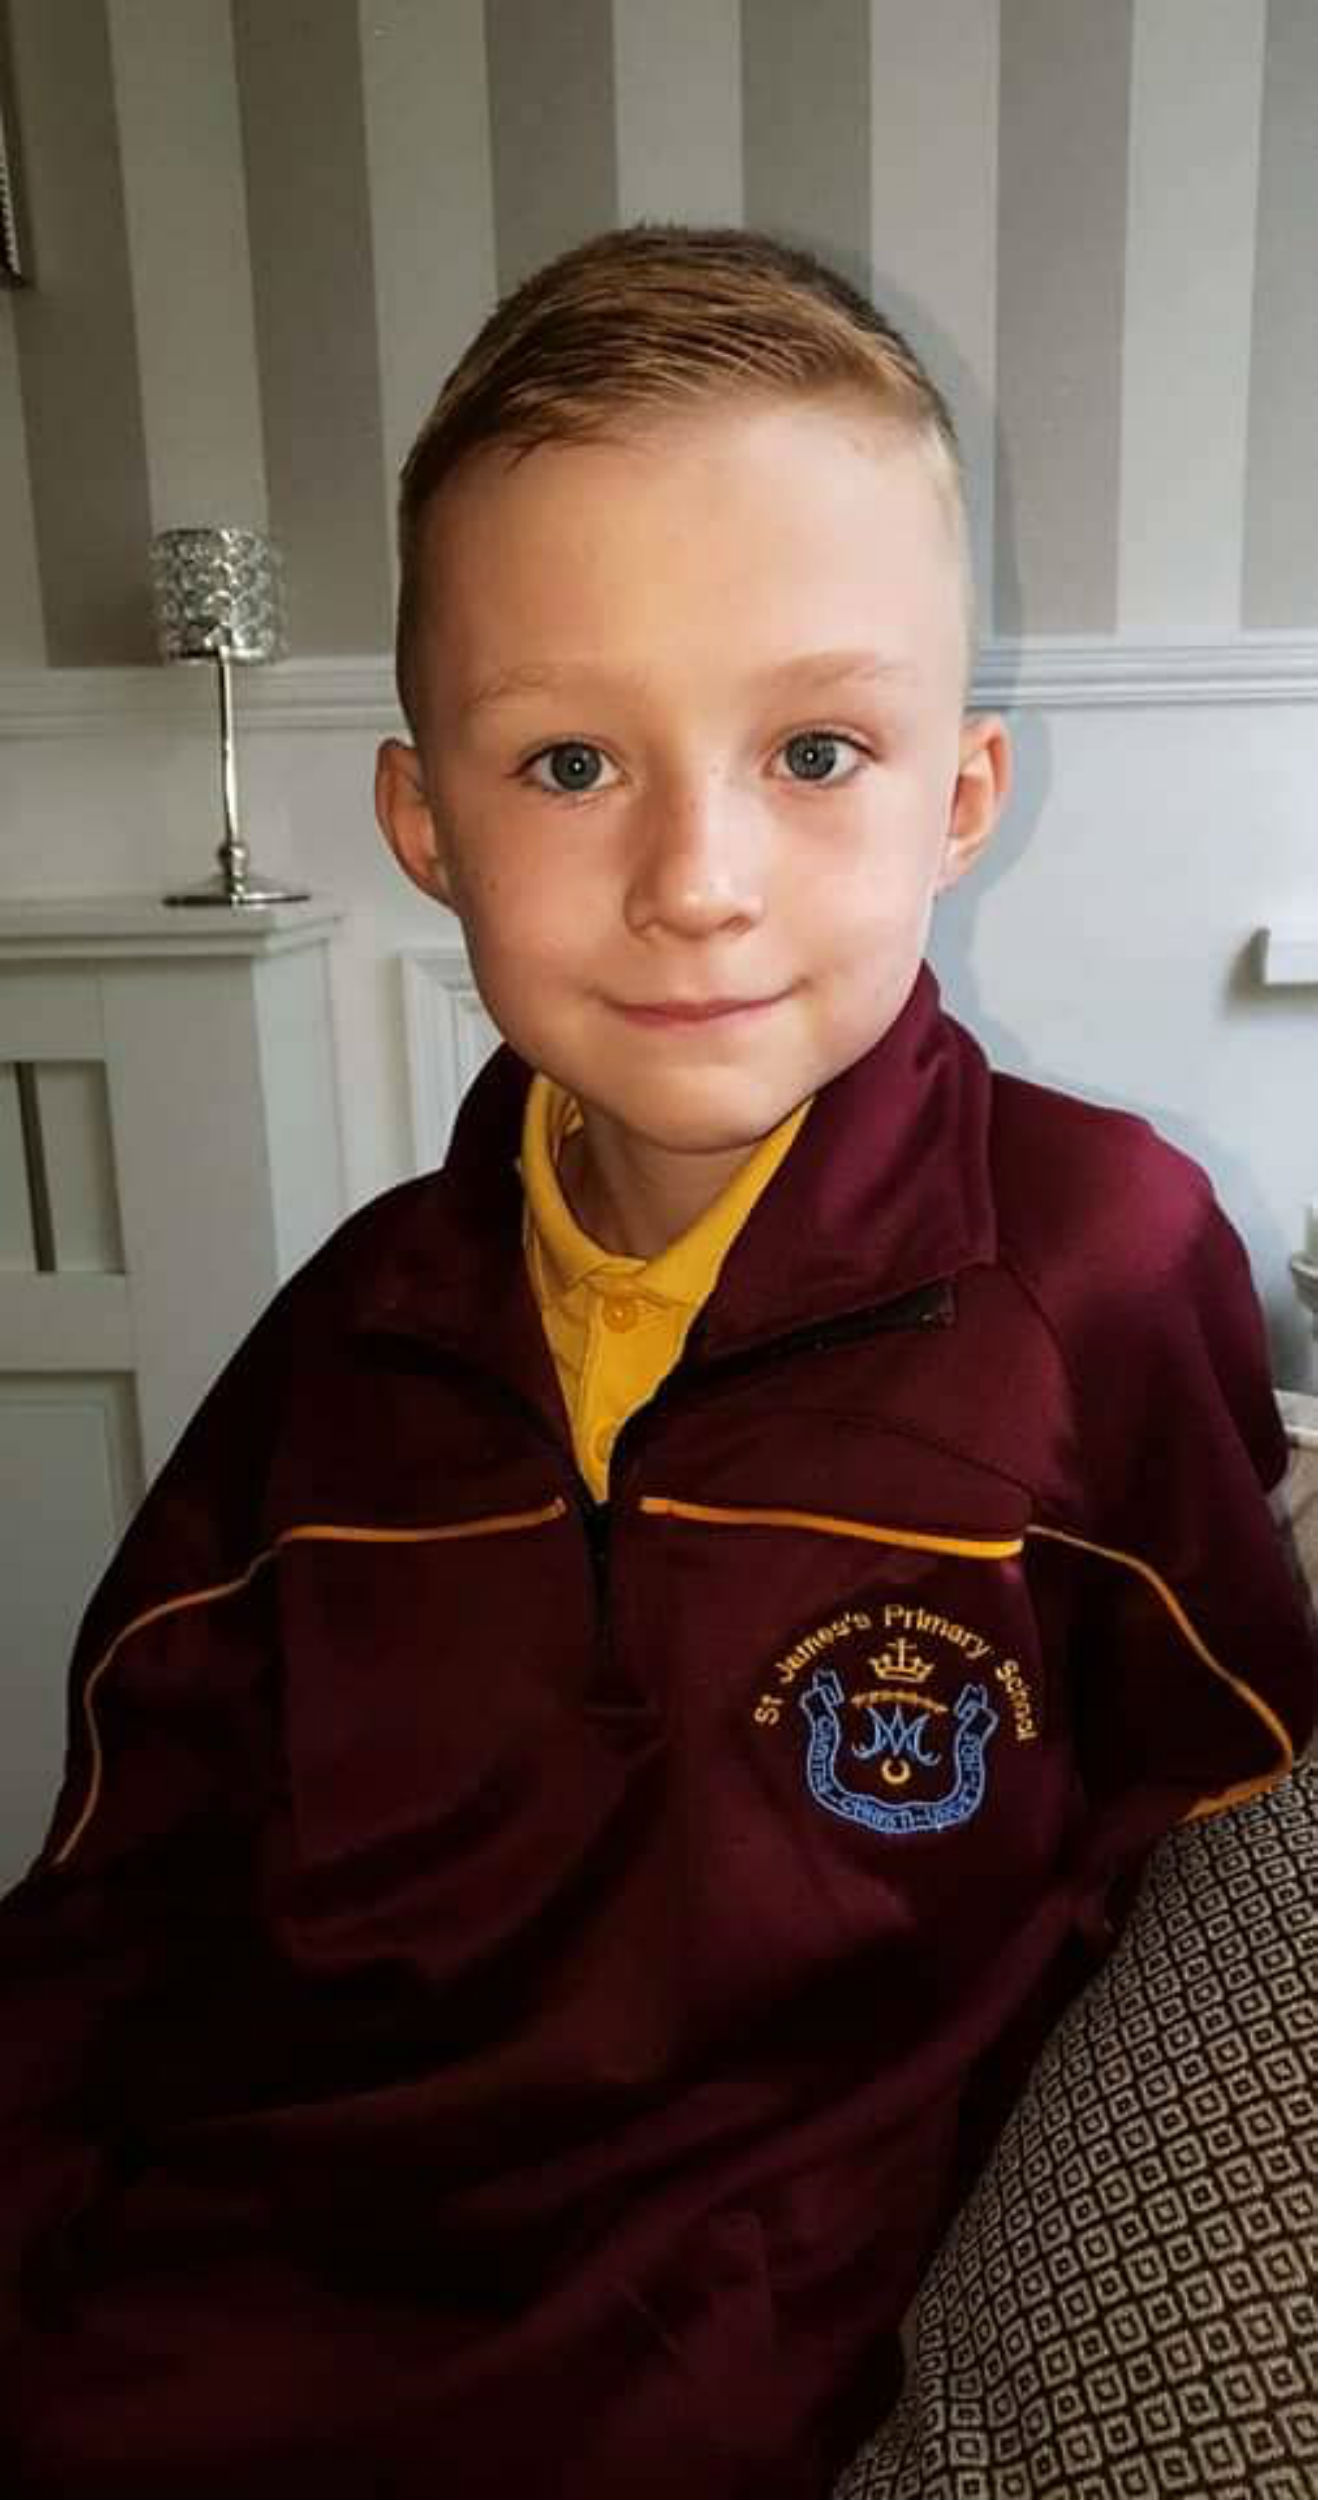 A picture of the autistic boy in his school uniform